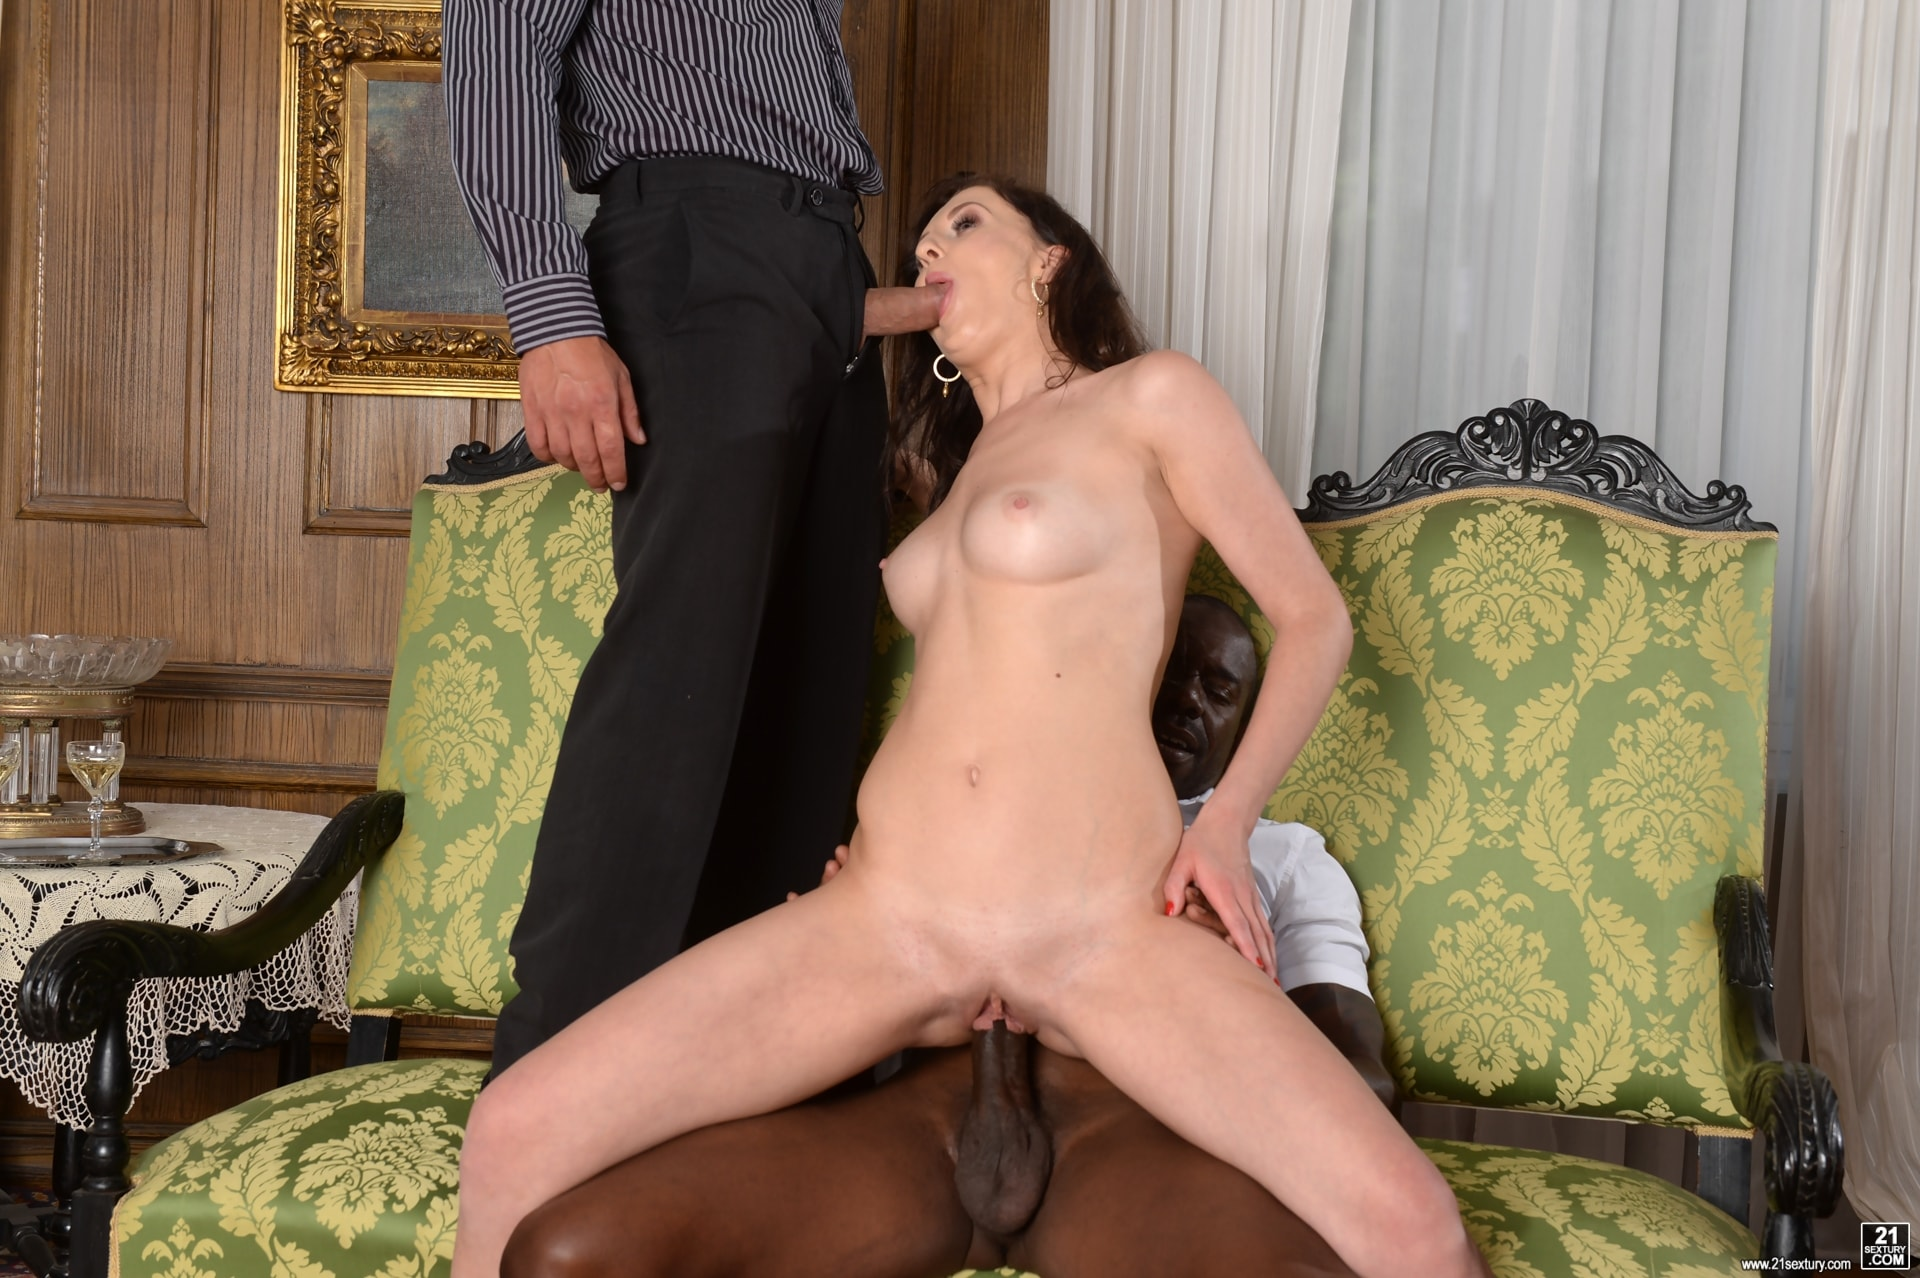 21Sextury 'Never Too Shy For a DP' starring Emily Ross (Photo 56)